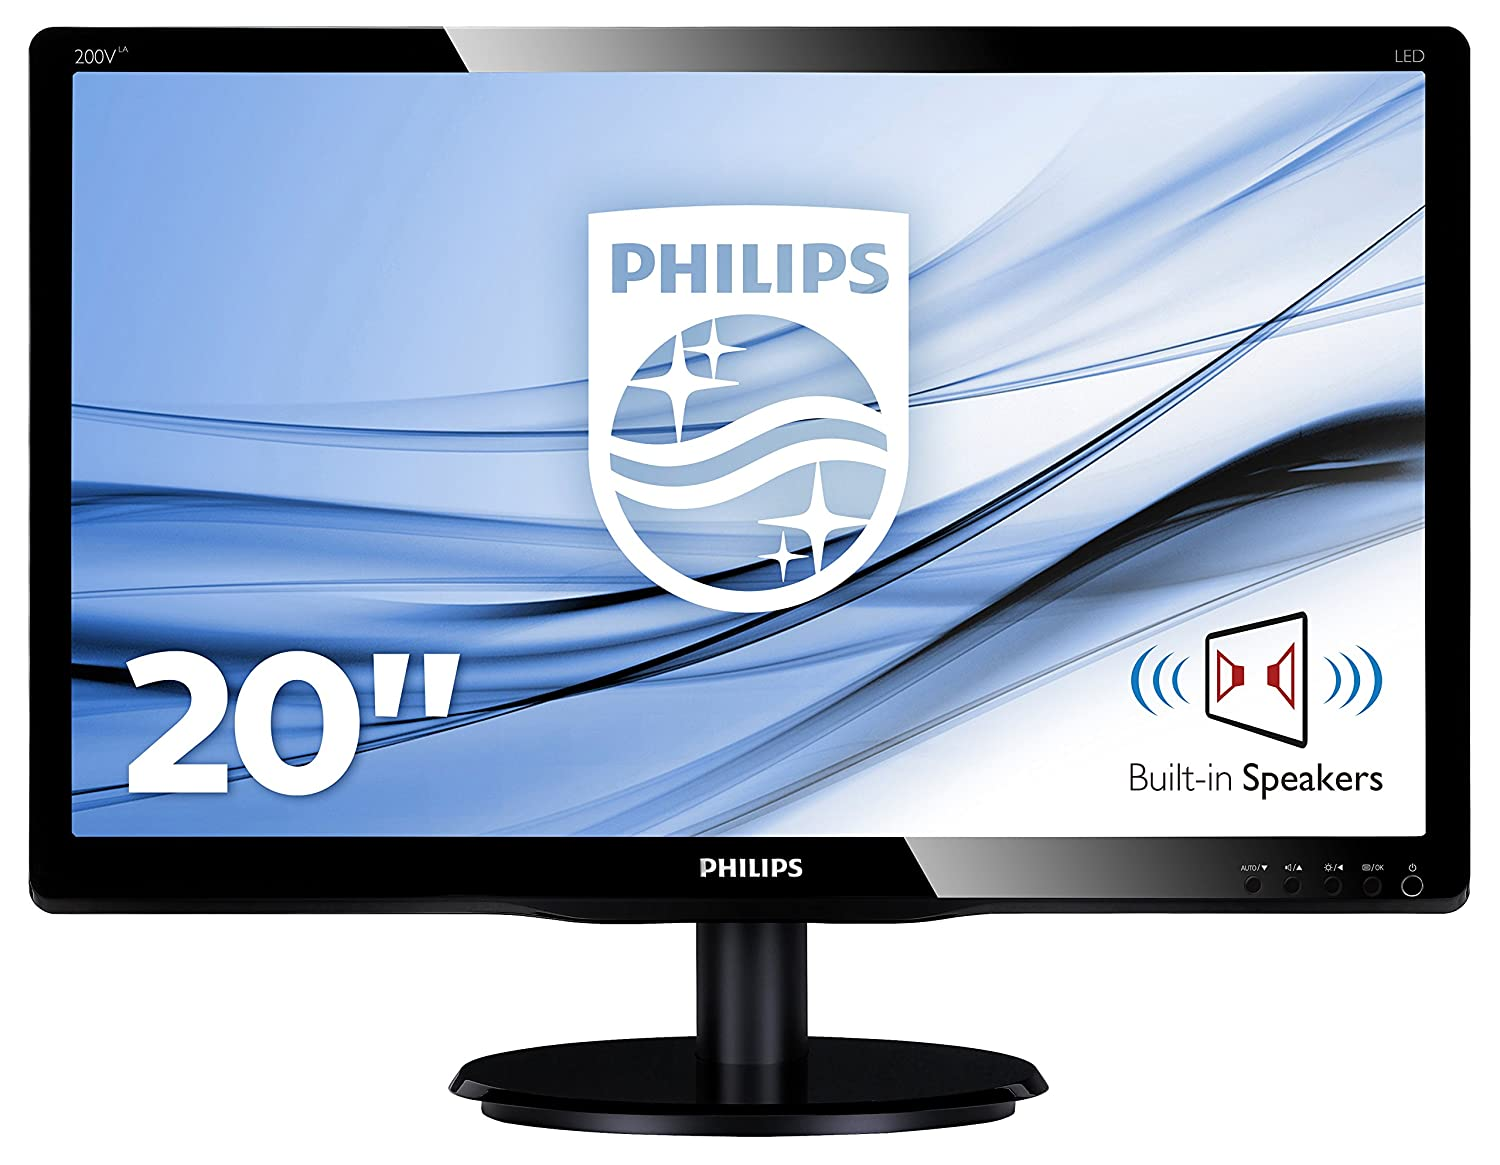 Philips 226V4LAB/00 - Monitor de 21.5' (resolució n 1920 x 1080 pixels, tecnologí a WLED, contraste 1000:1, 5 ms, VGA), color negro Philips 226V4LAB/00 - Monitor de 21.5 (resolución 1920 x 1080 pixels tecnología WLED